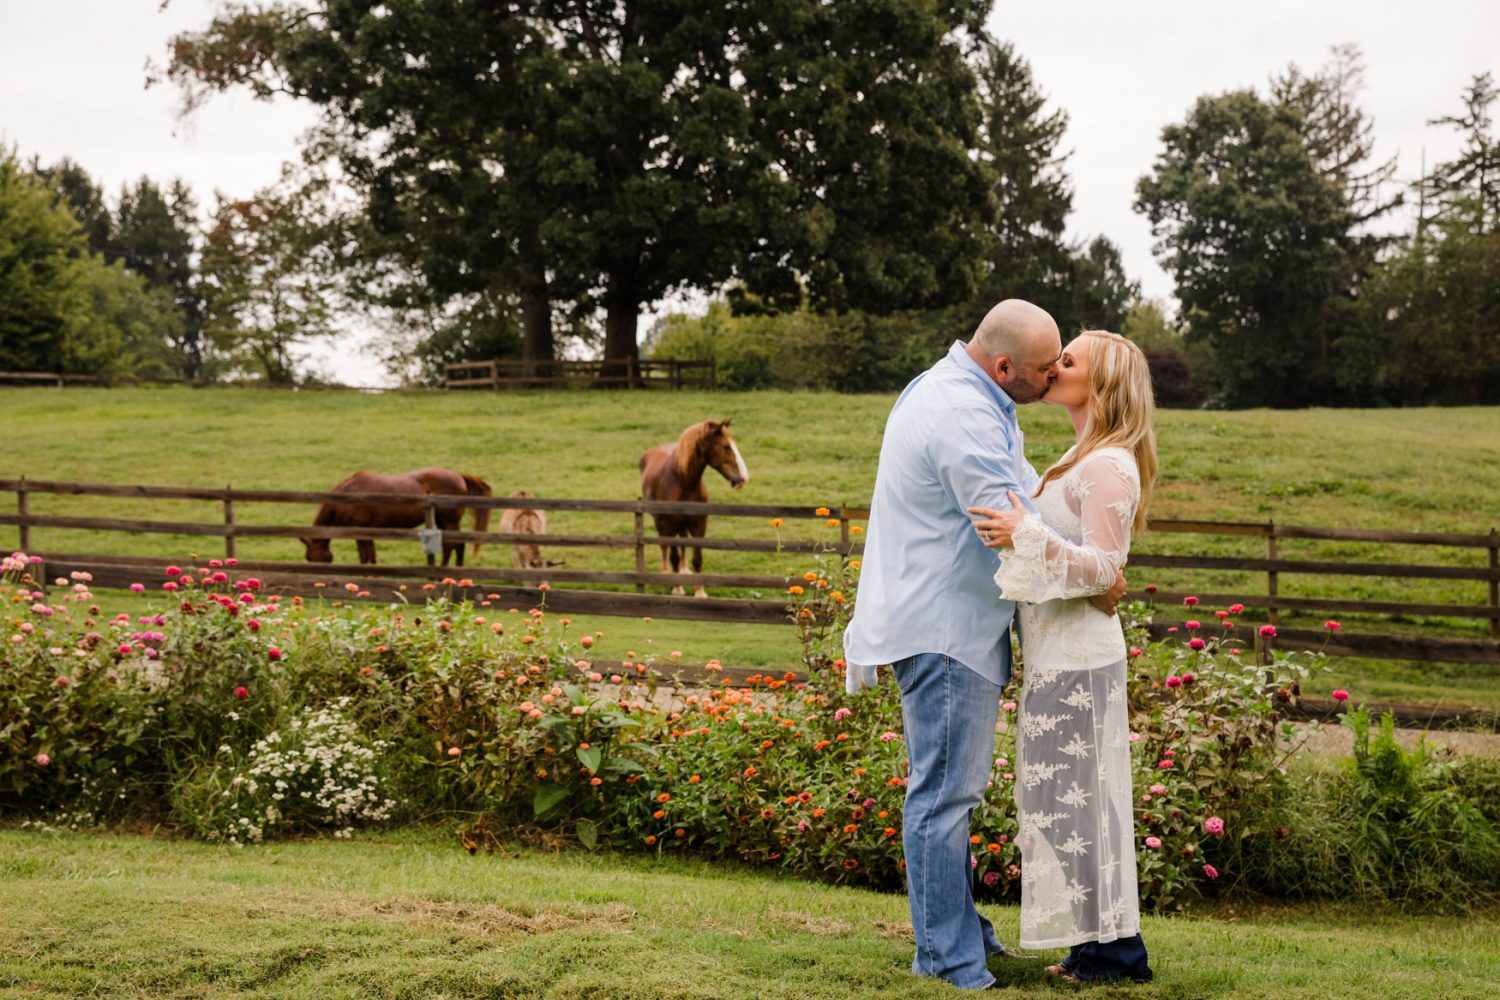 Engagement Session Garden with Horses The Farm - A Gathering Place Candler NC Wedding Photography